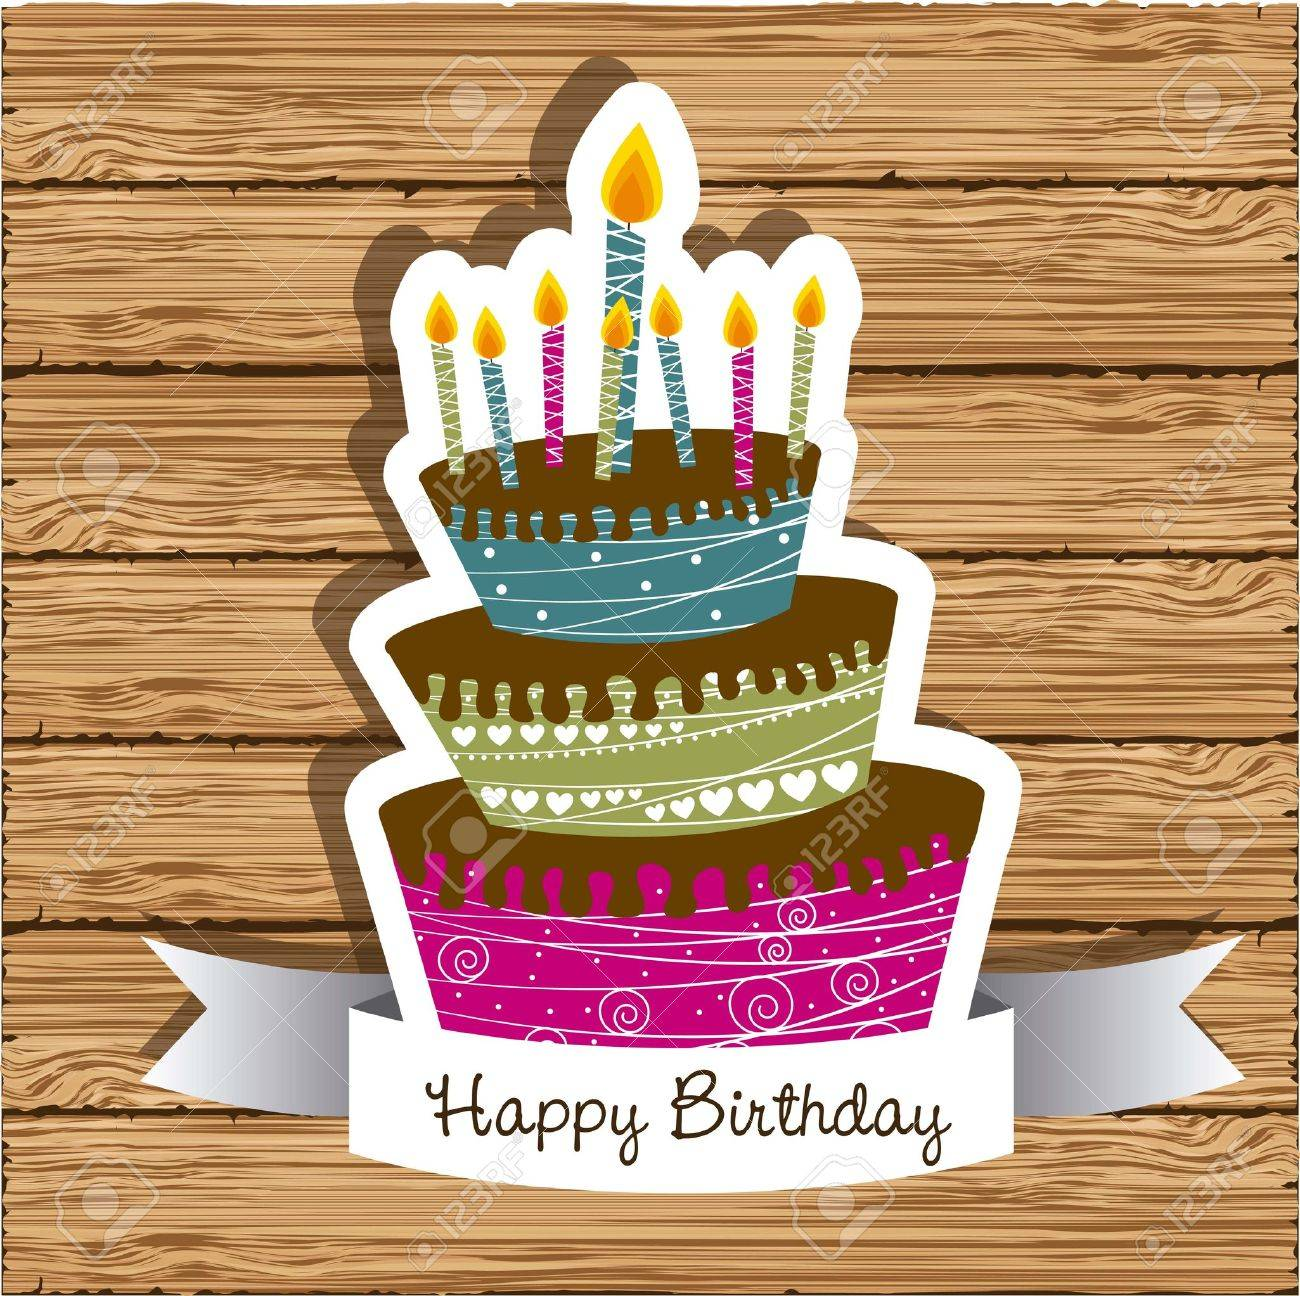 Birthday card with colored cake on wood background vector birthday card with colored cake on wood background vector illustration stock vector 14473398 kristyandbryce Image collections